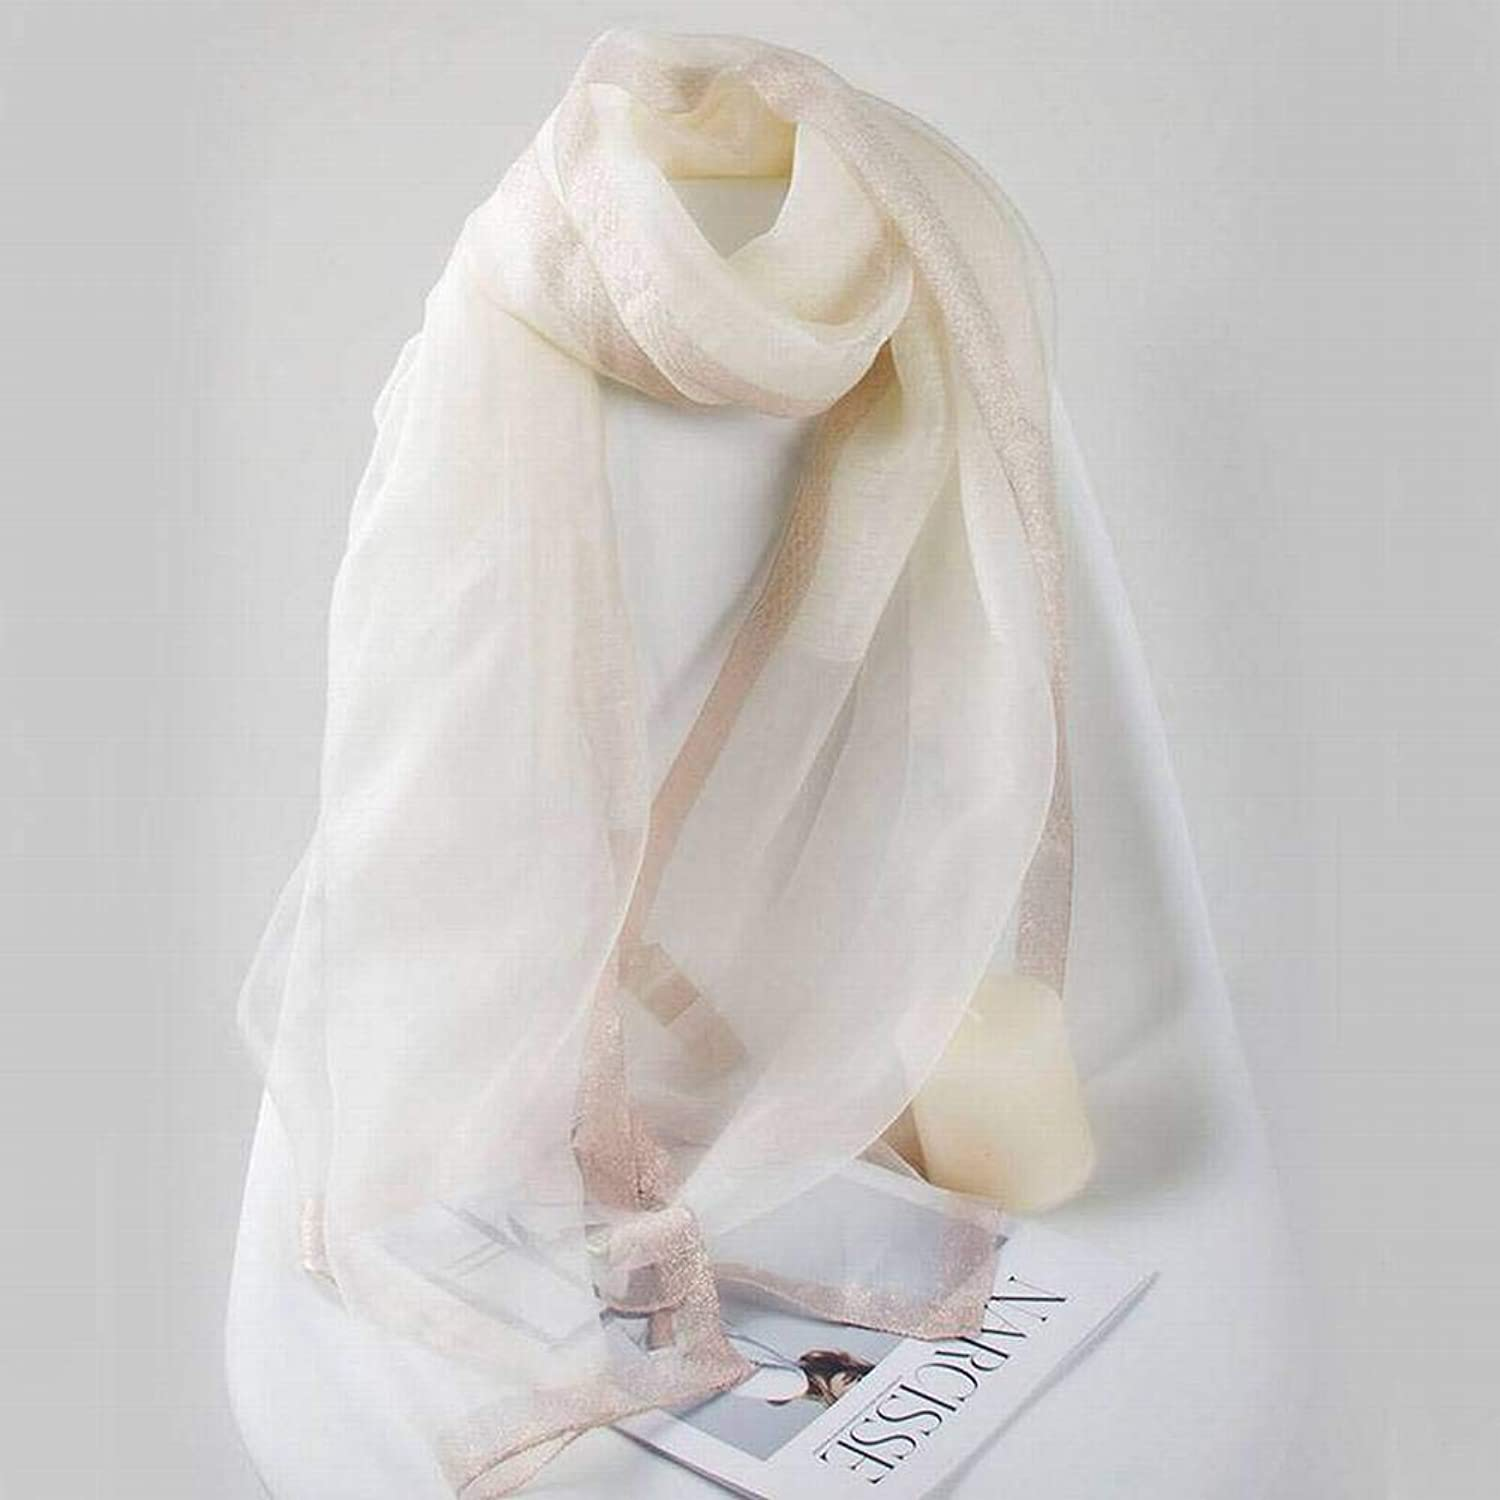 Elegant Ladies Pure color Female Warm Monochrome Long Autumn and Winter Outdoor MultiFunctional Fashion Trend Wild Warm Shawl Scarf Gift, Chuan Han, White